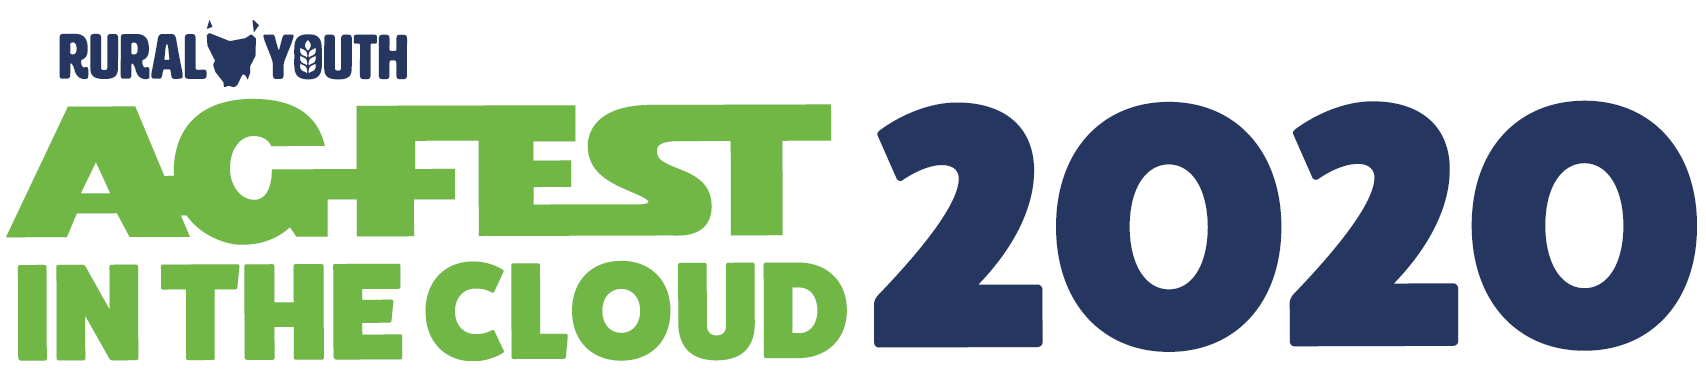 Agfest in the cloud